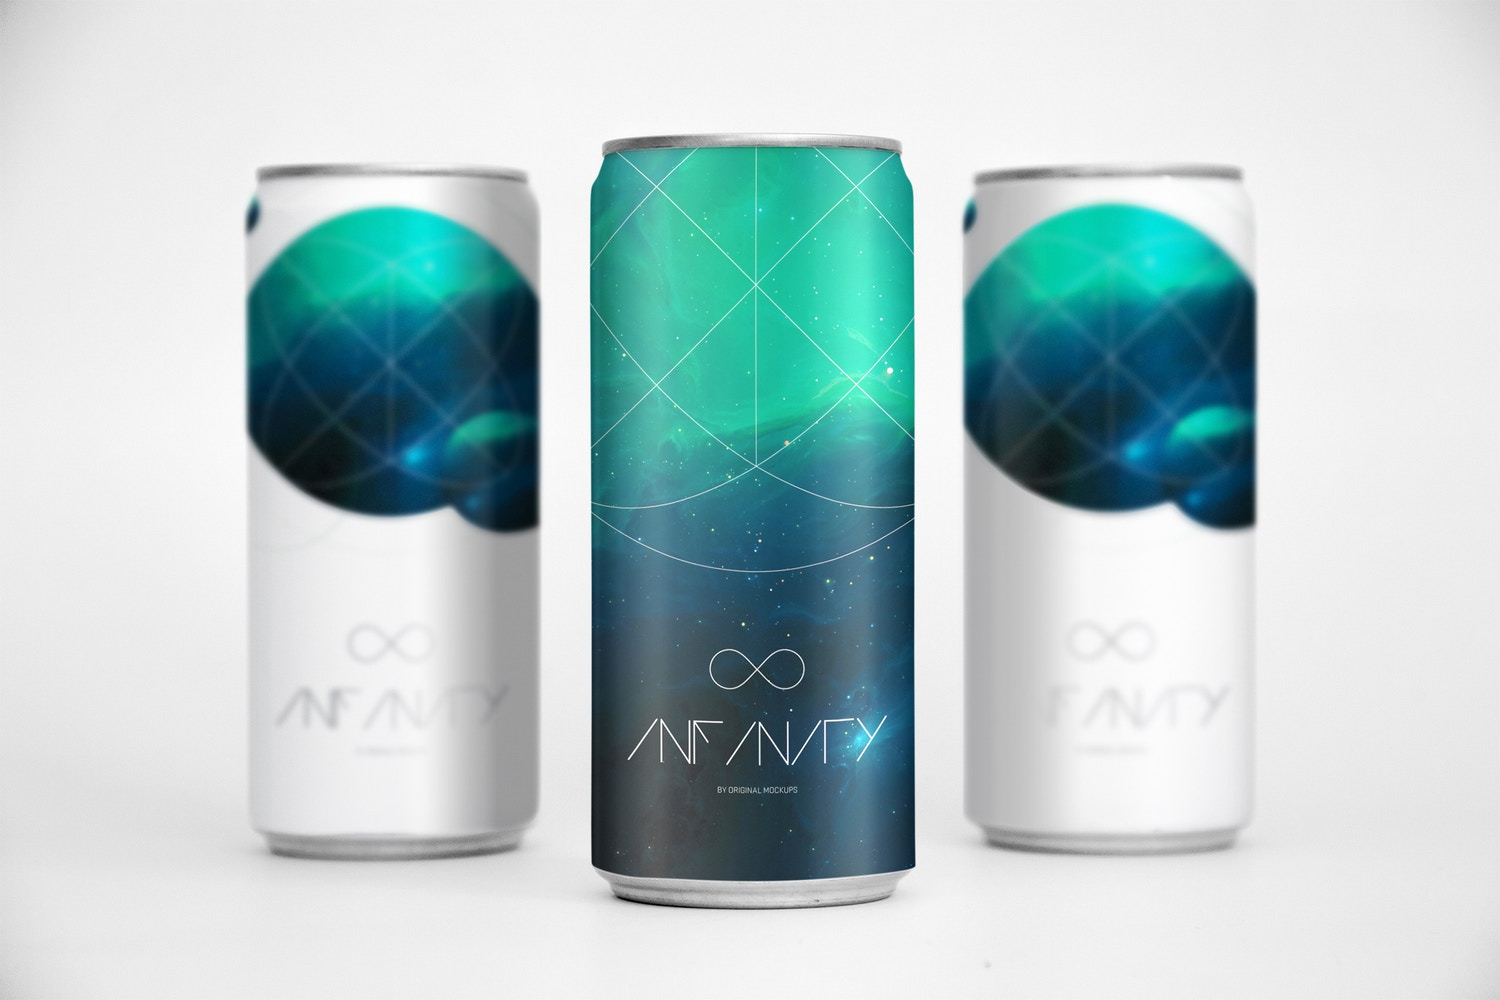 Sleek Cans Mockup 2 by Original Mockups on Original Mockups